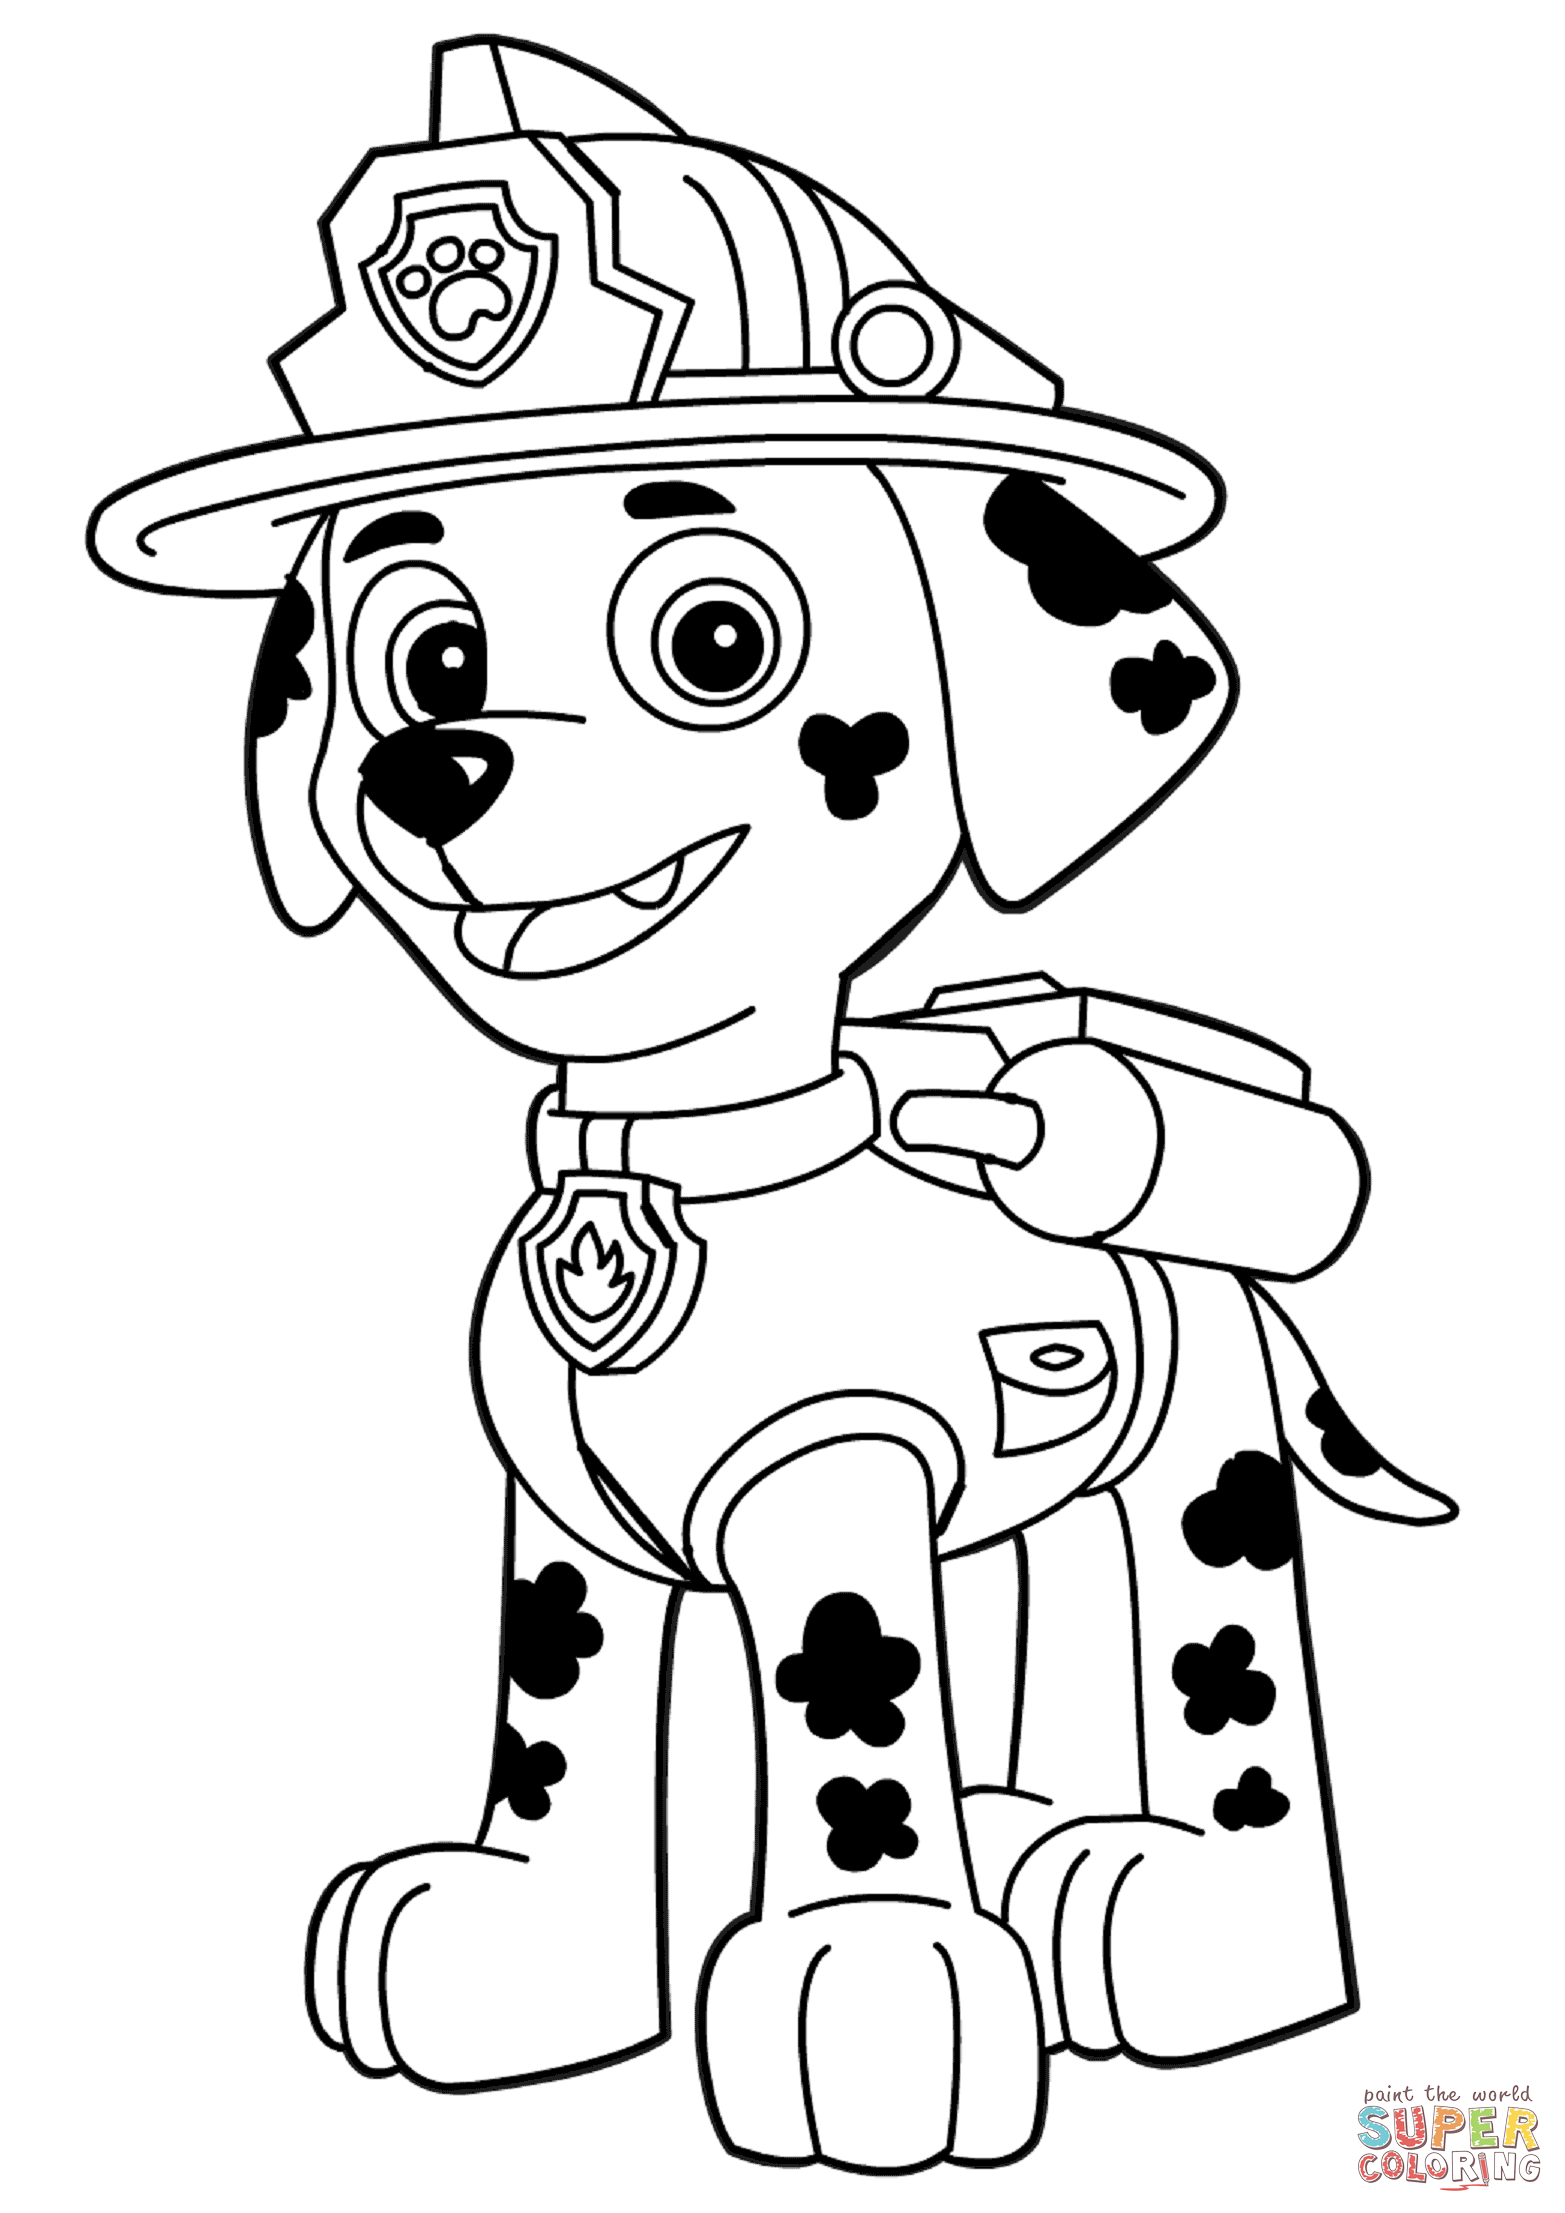 Image Result For Paw Patrol Clip Art Black And White